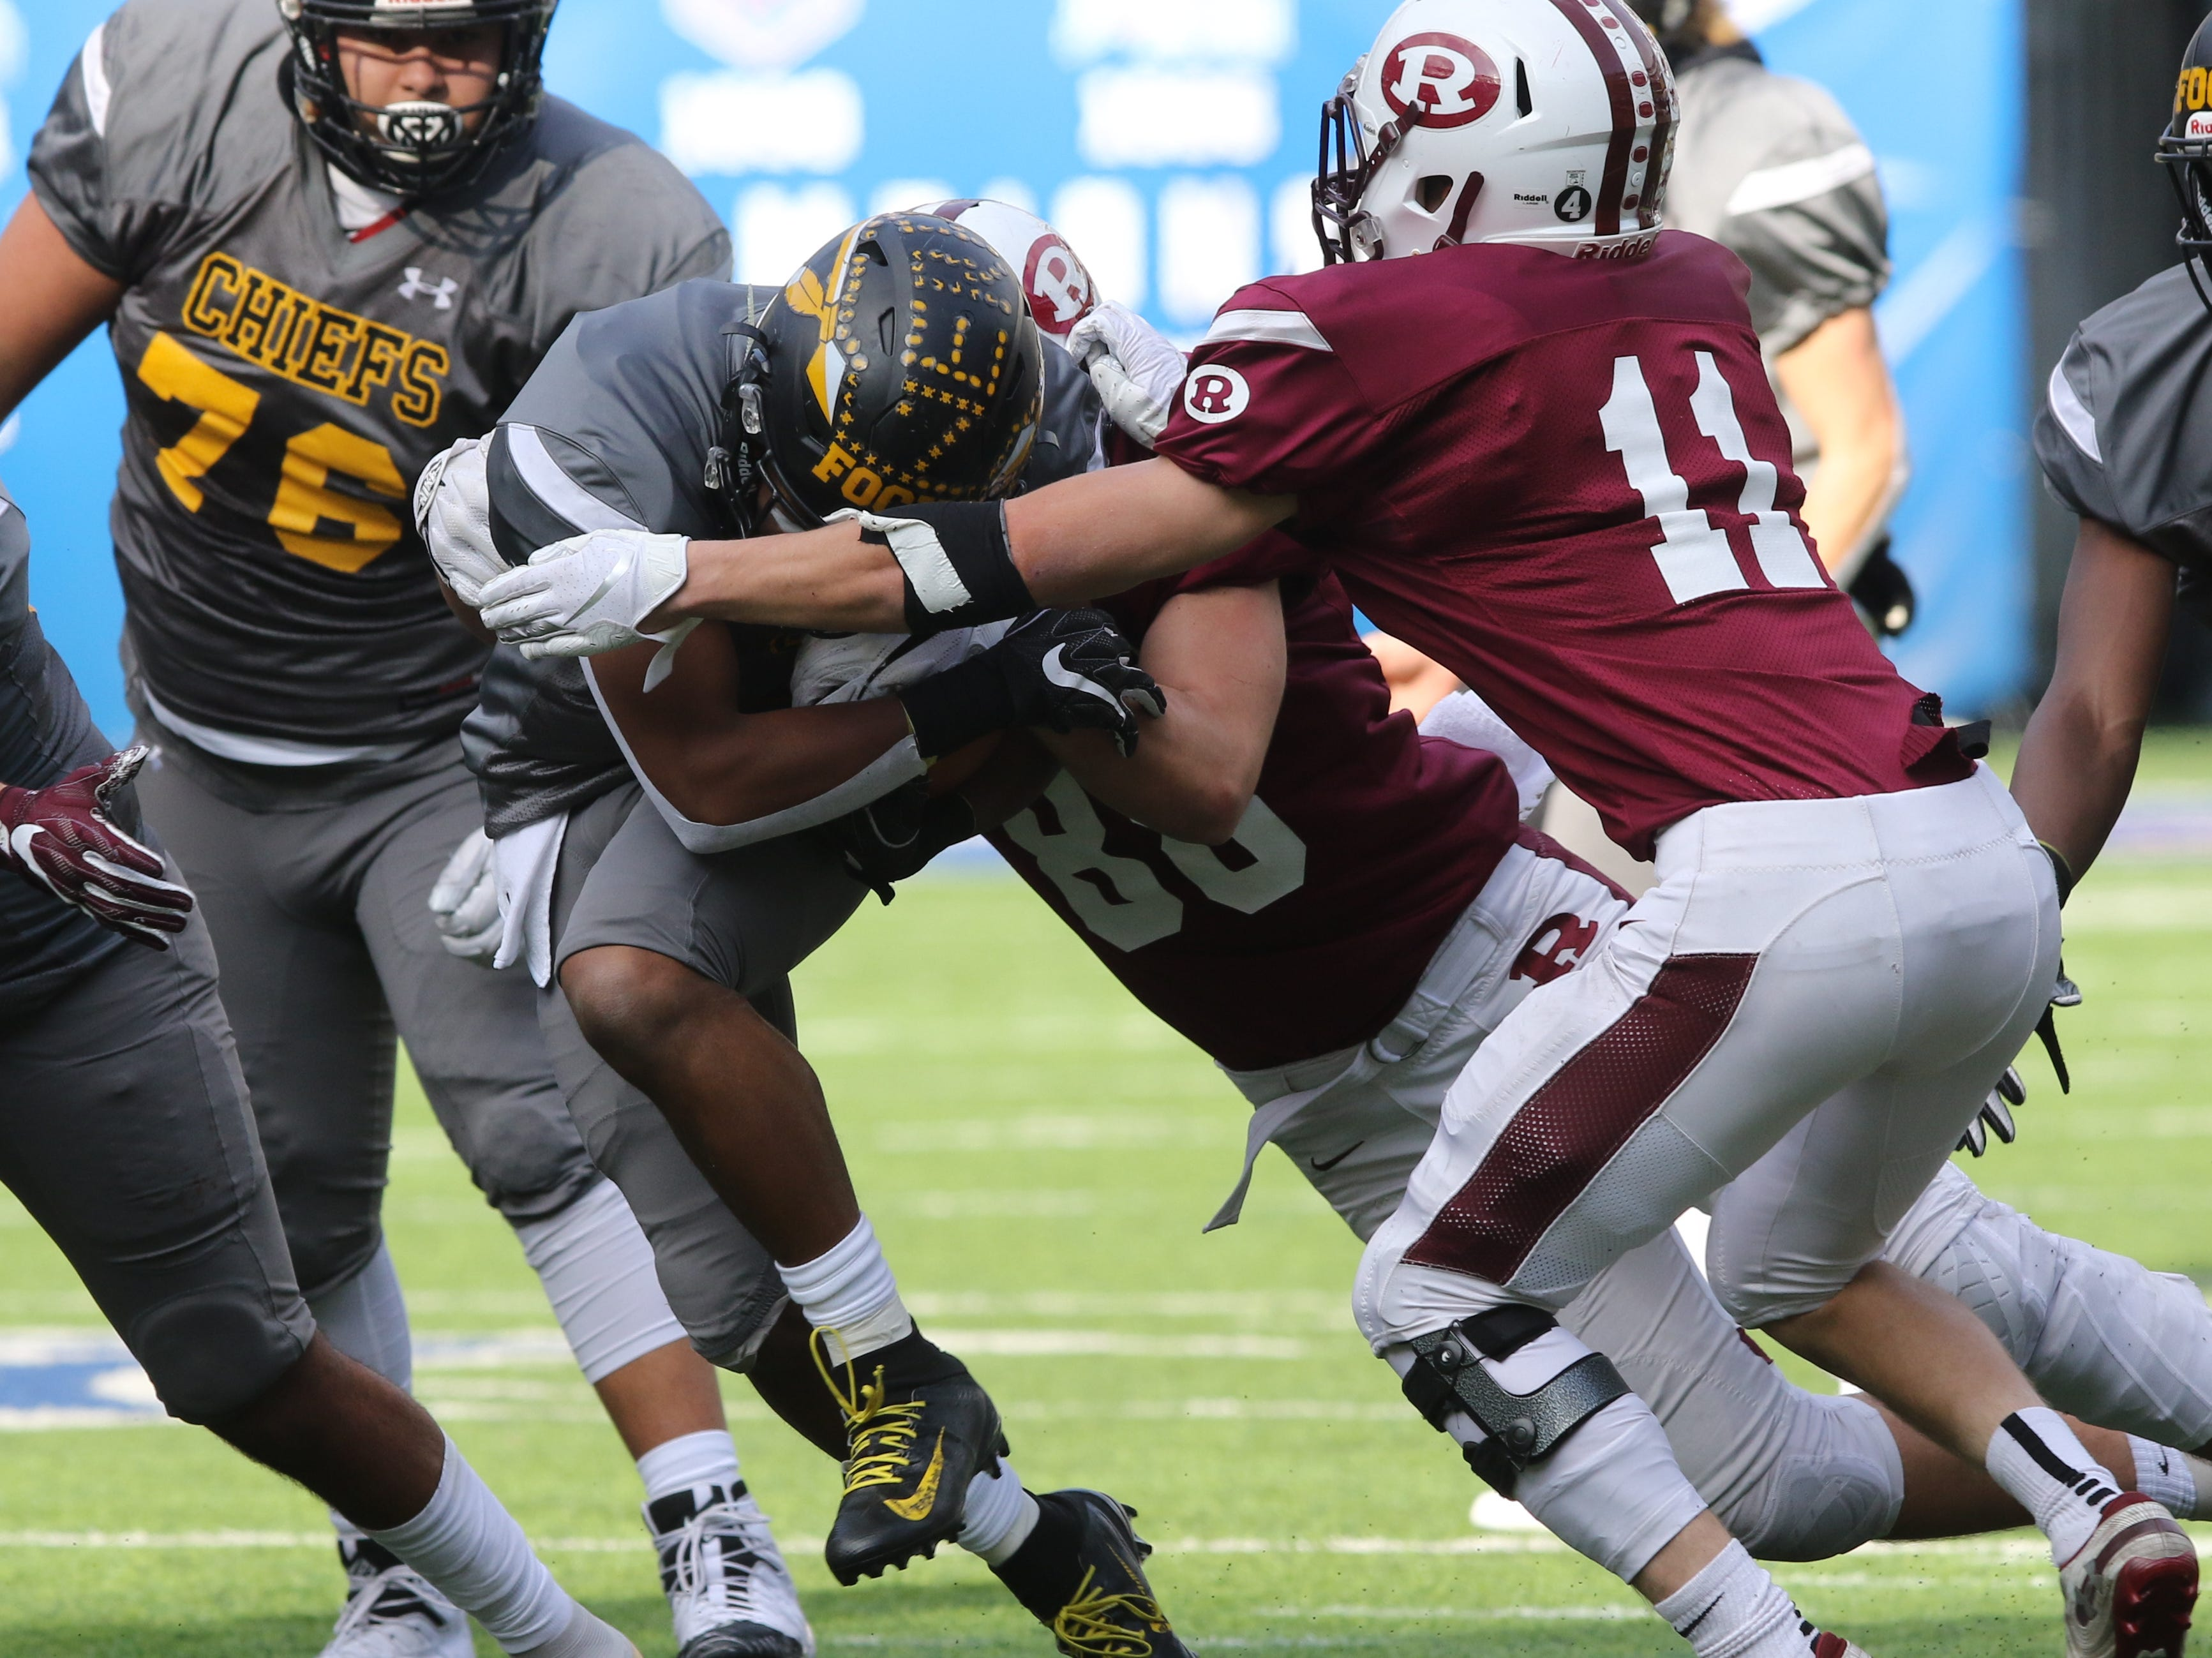 Nasir Best of Piscataway is tackled by Harrison Roberts of Ridgewood in the first half.